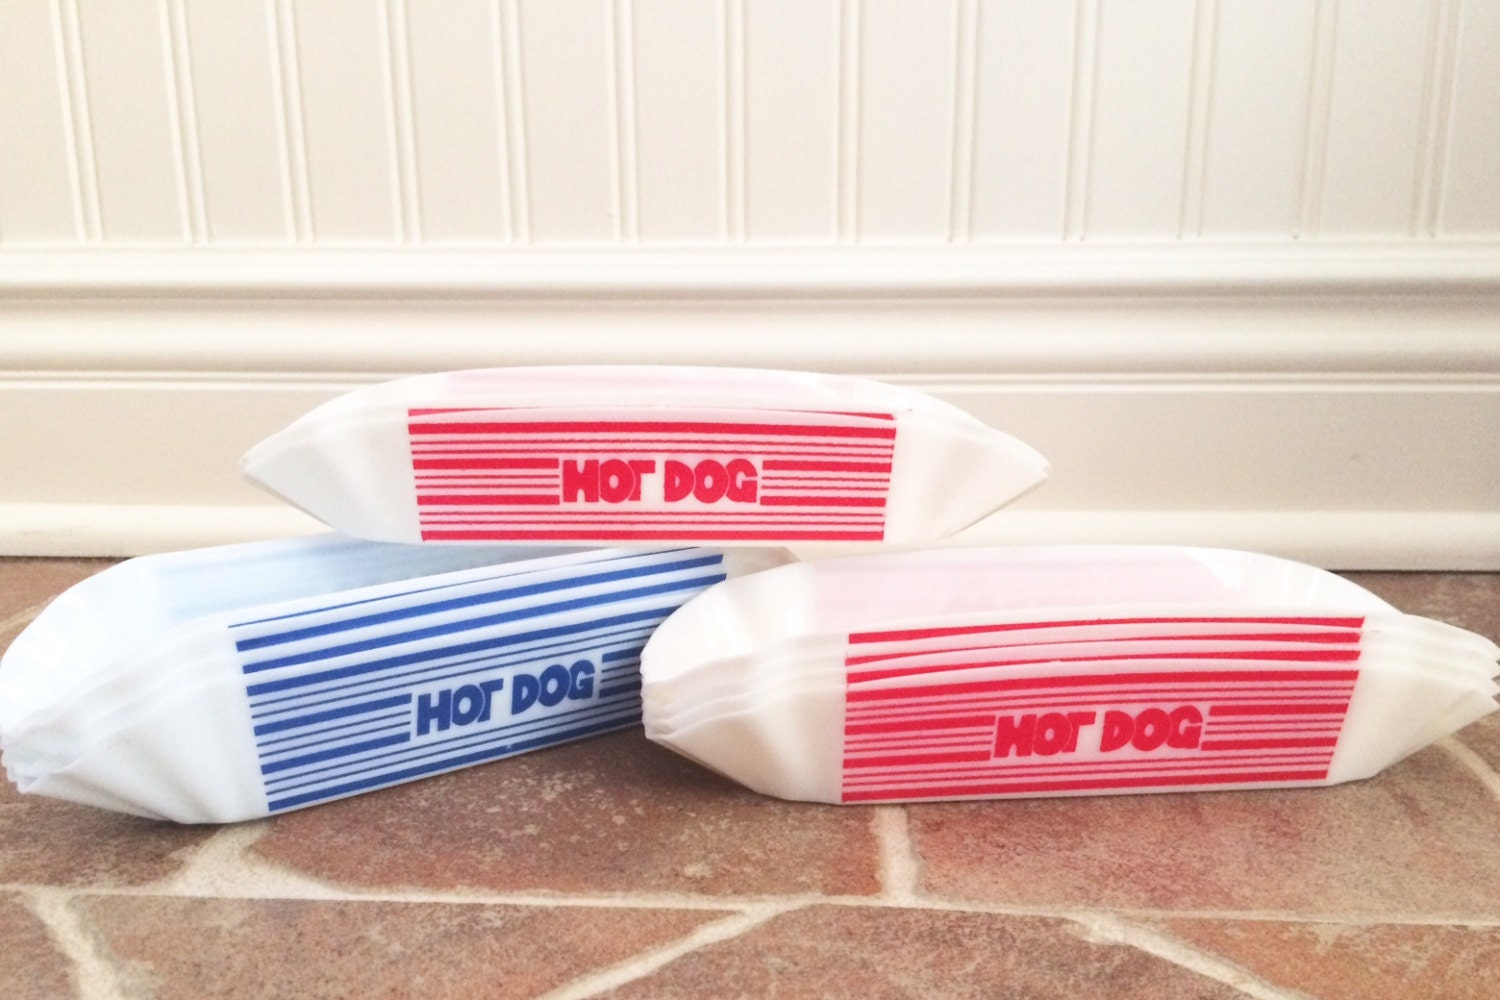 Serve delicious hamburgers, hot dogs, barbecue, fries, and more with these paper food trays! With a variety of sizes and patterns from which to choose, our selection of disposable food trays is perfect for any food service location, and since they're simply thrown away after being used, cleanup is .